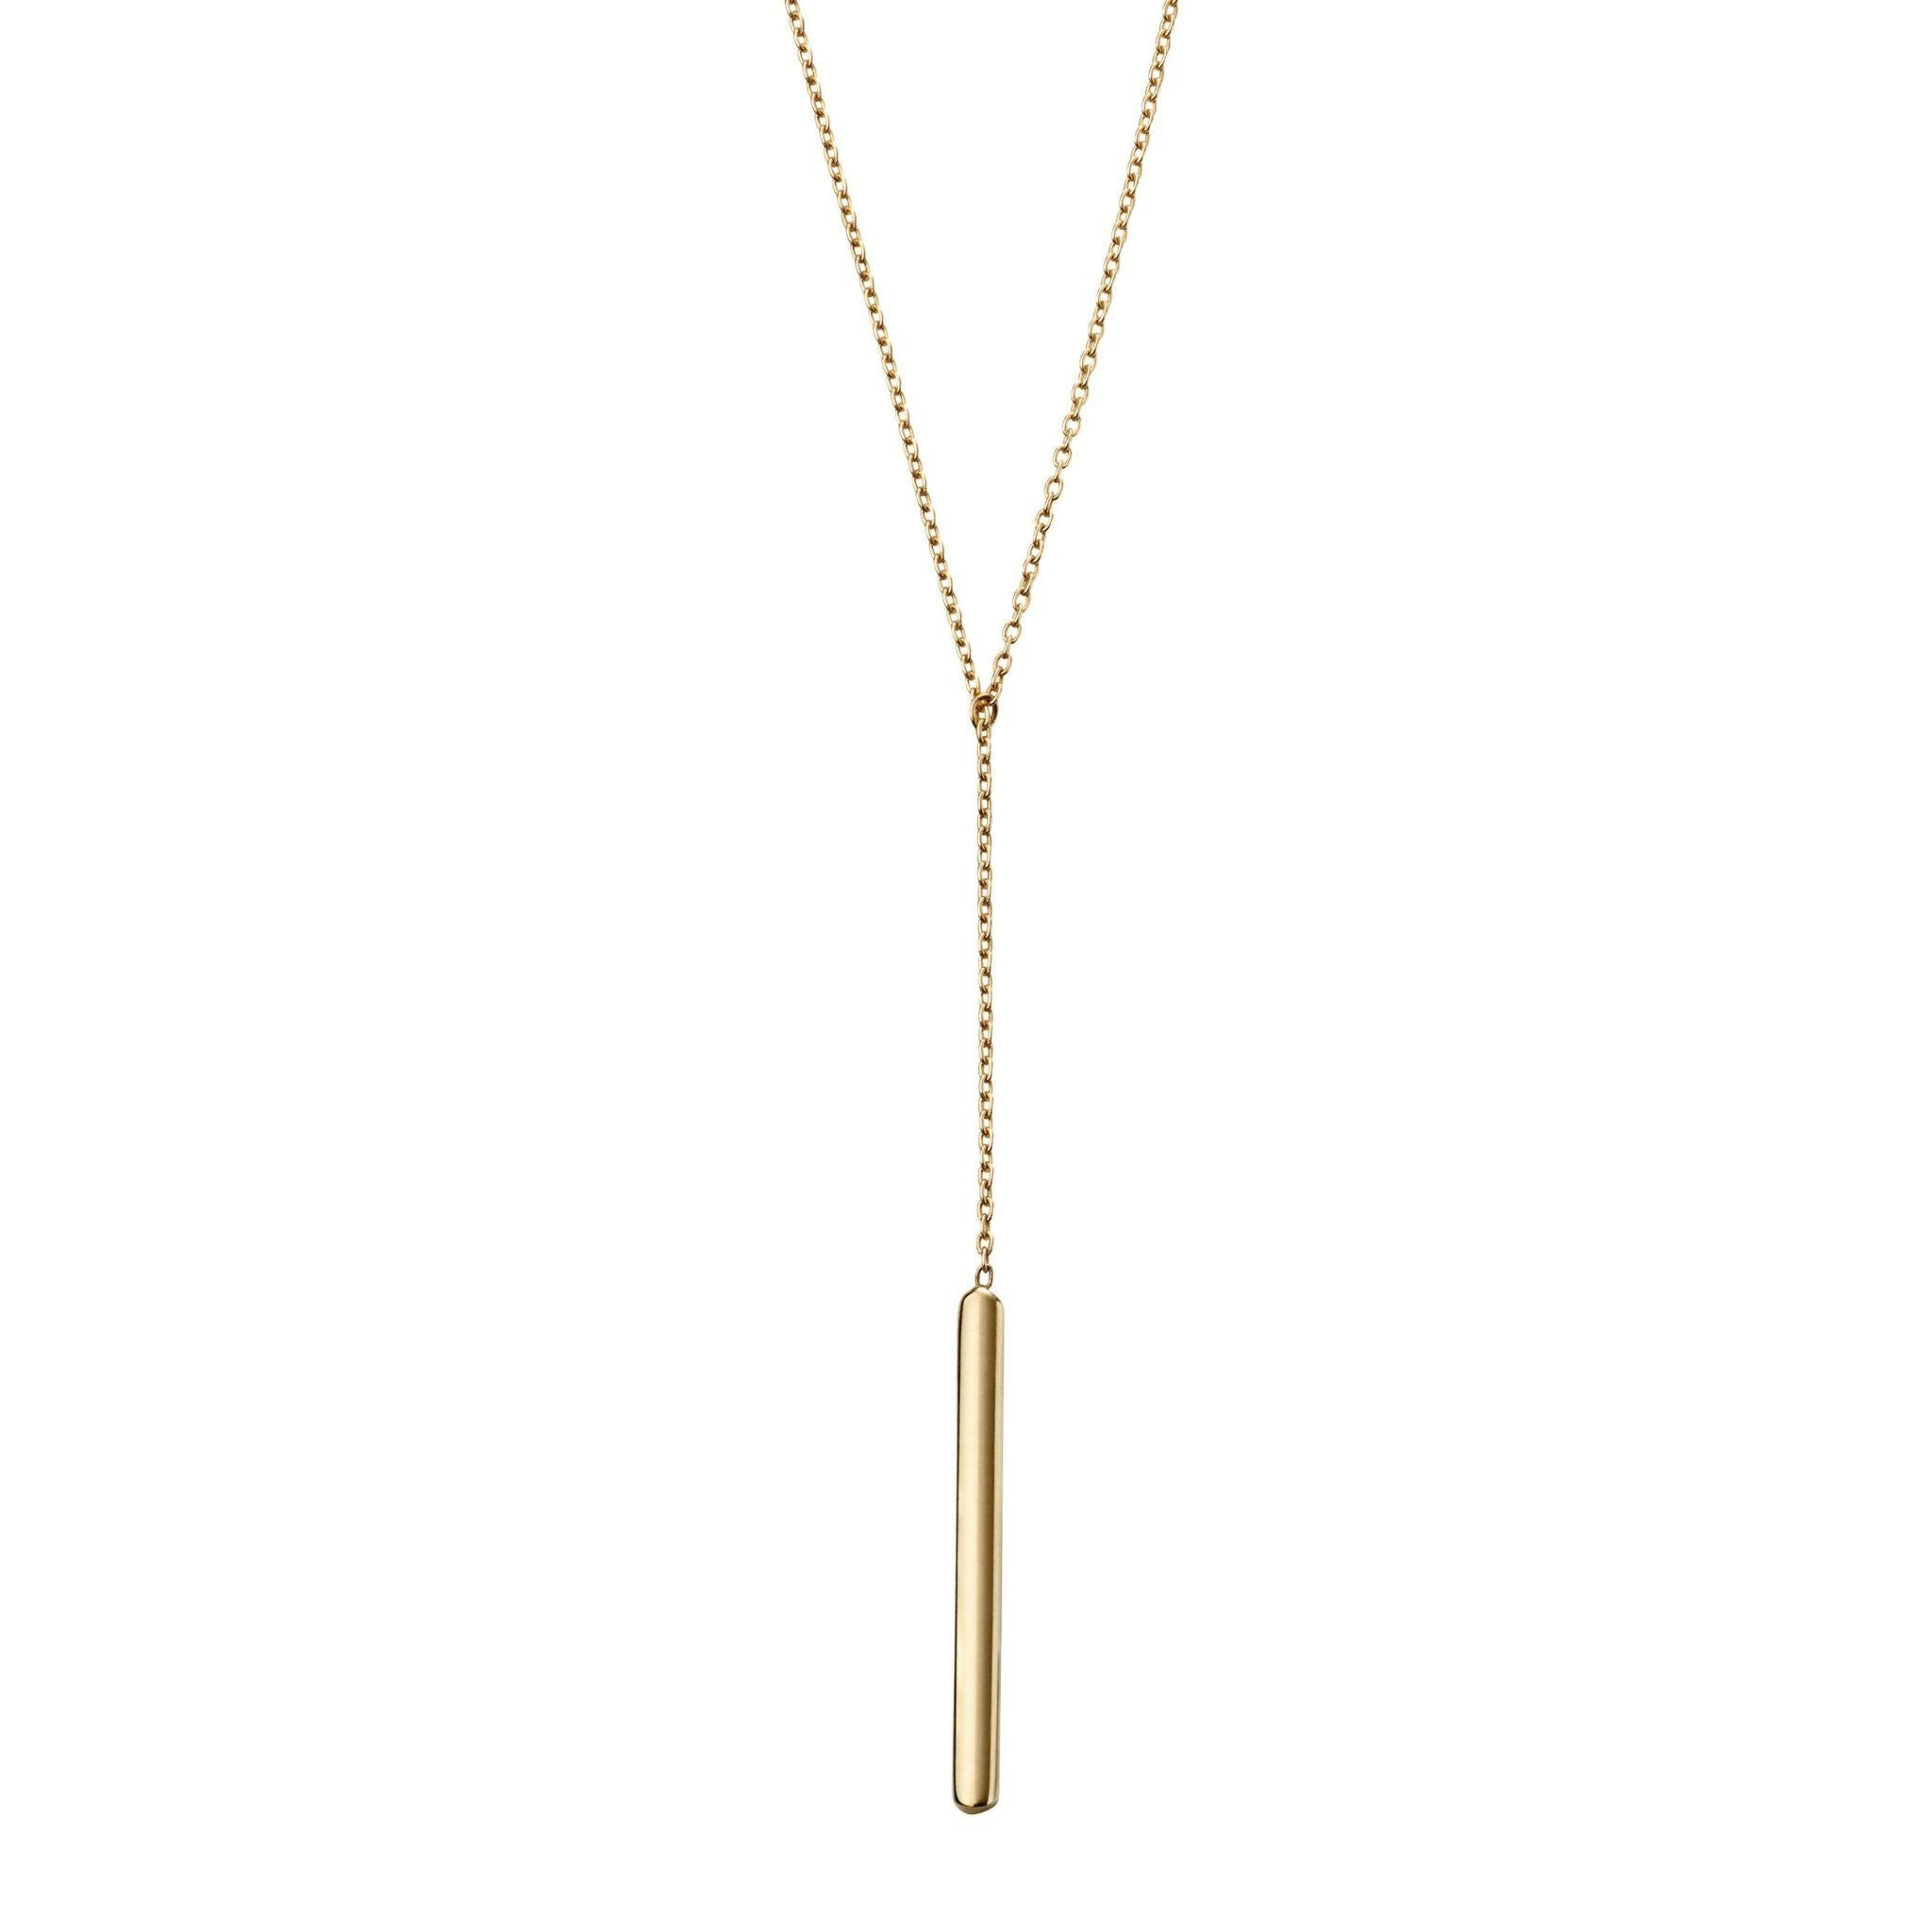 9ct Yellow Gold Drop Necklace